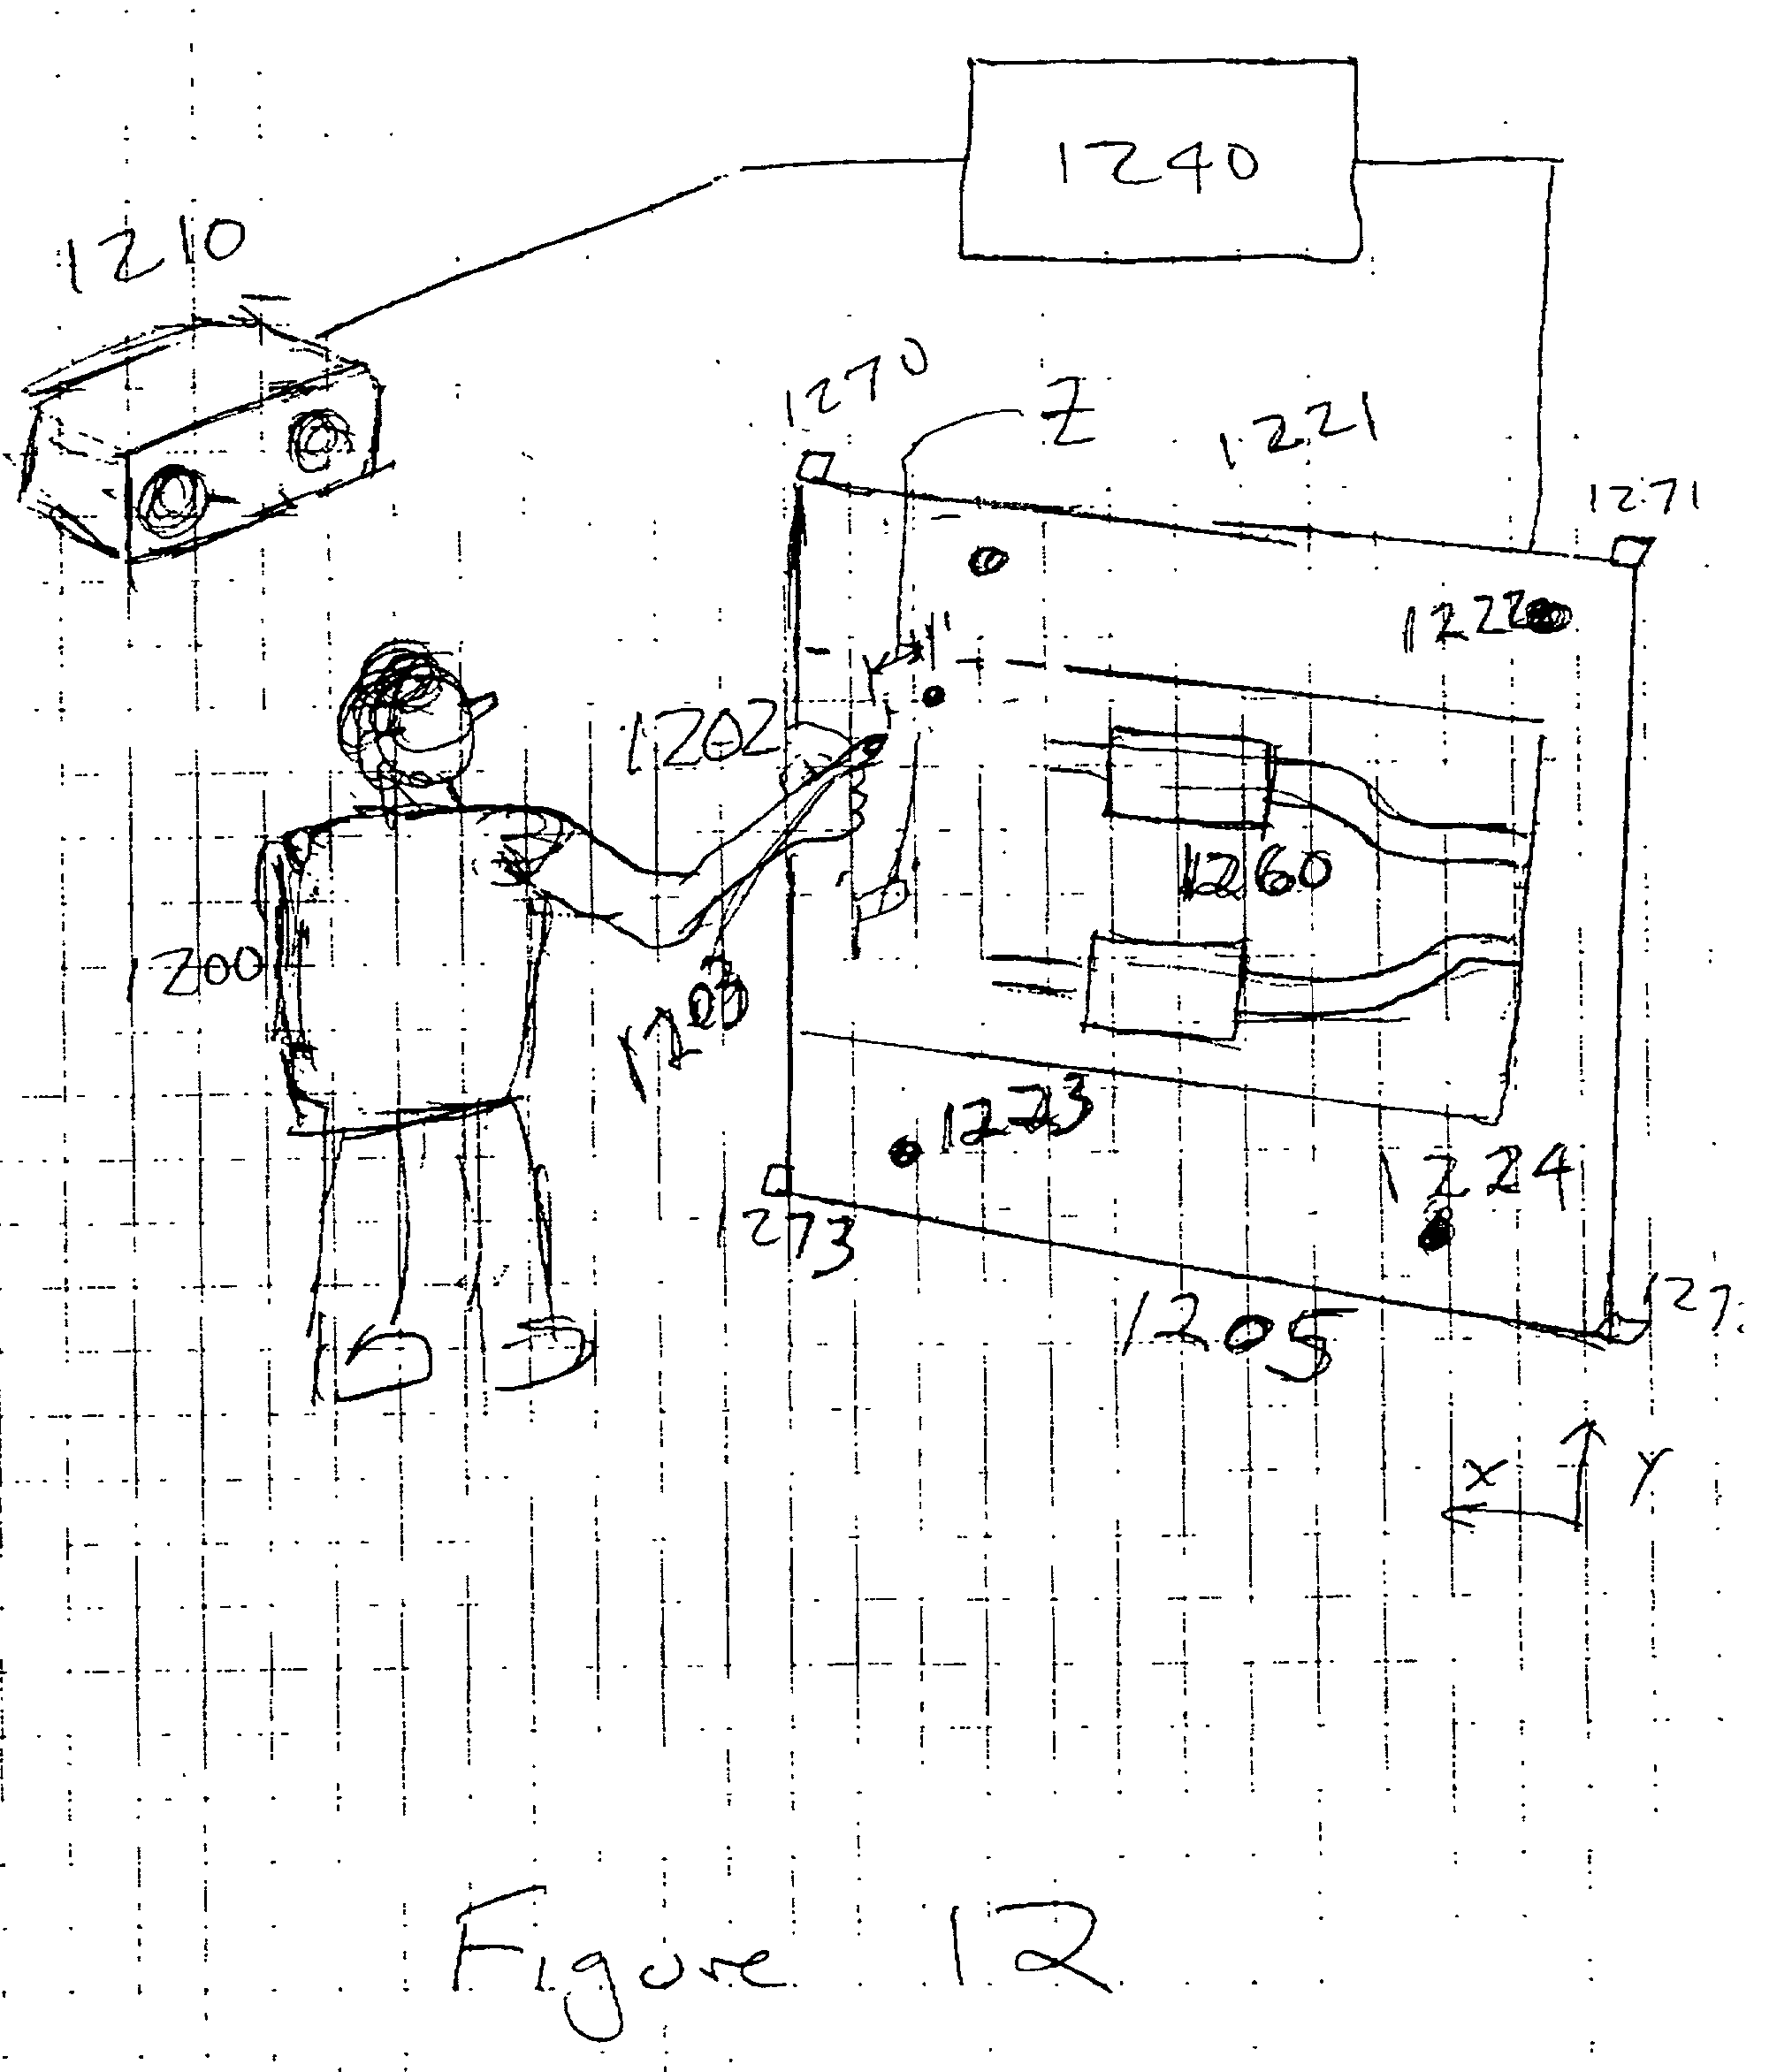 patent us 20020036617a1 Hot Water Baseboard Heating System patent images